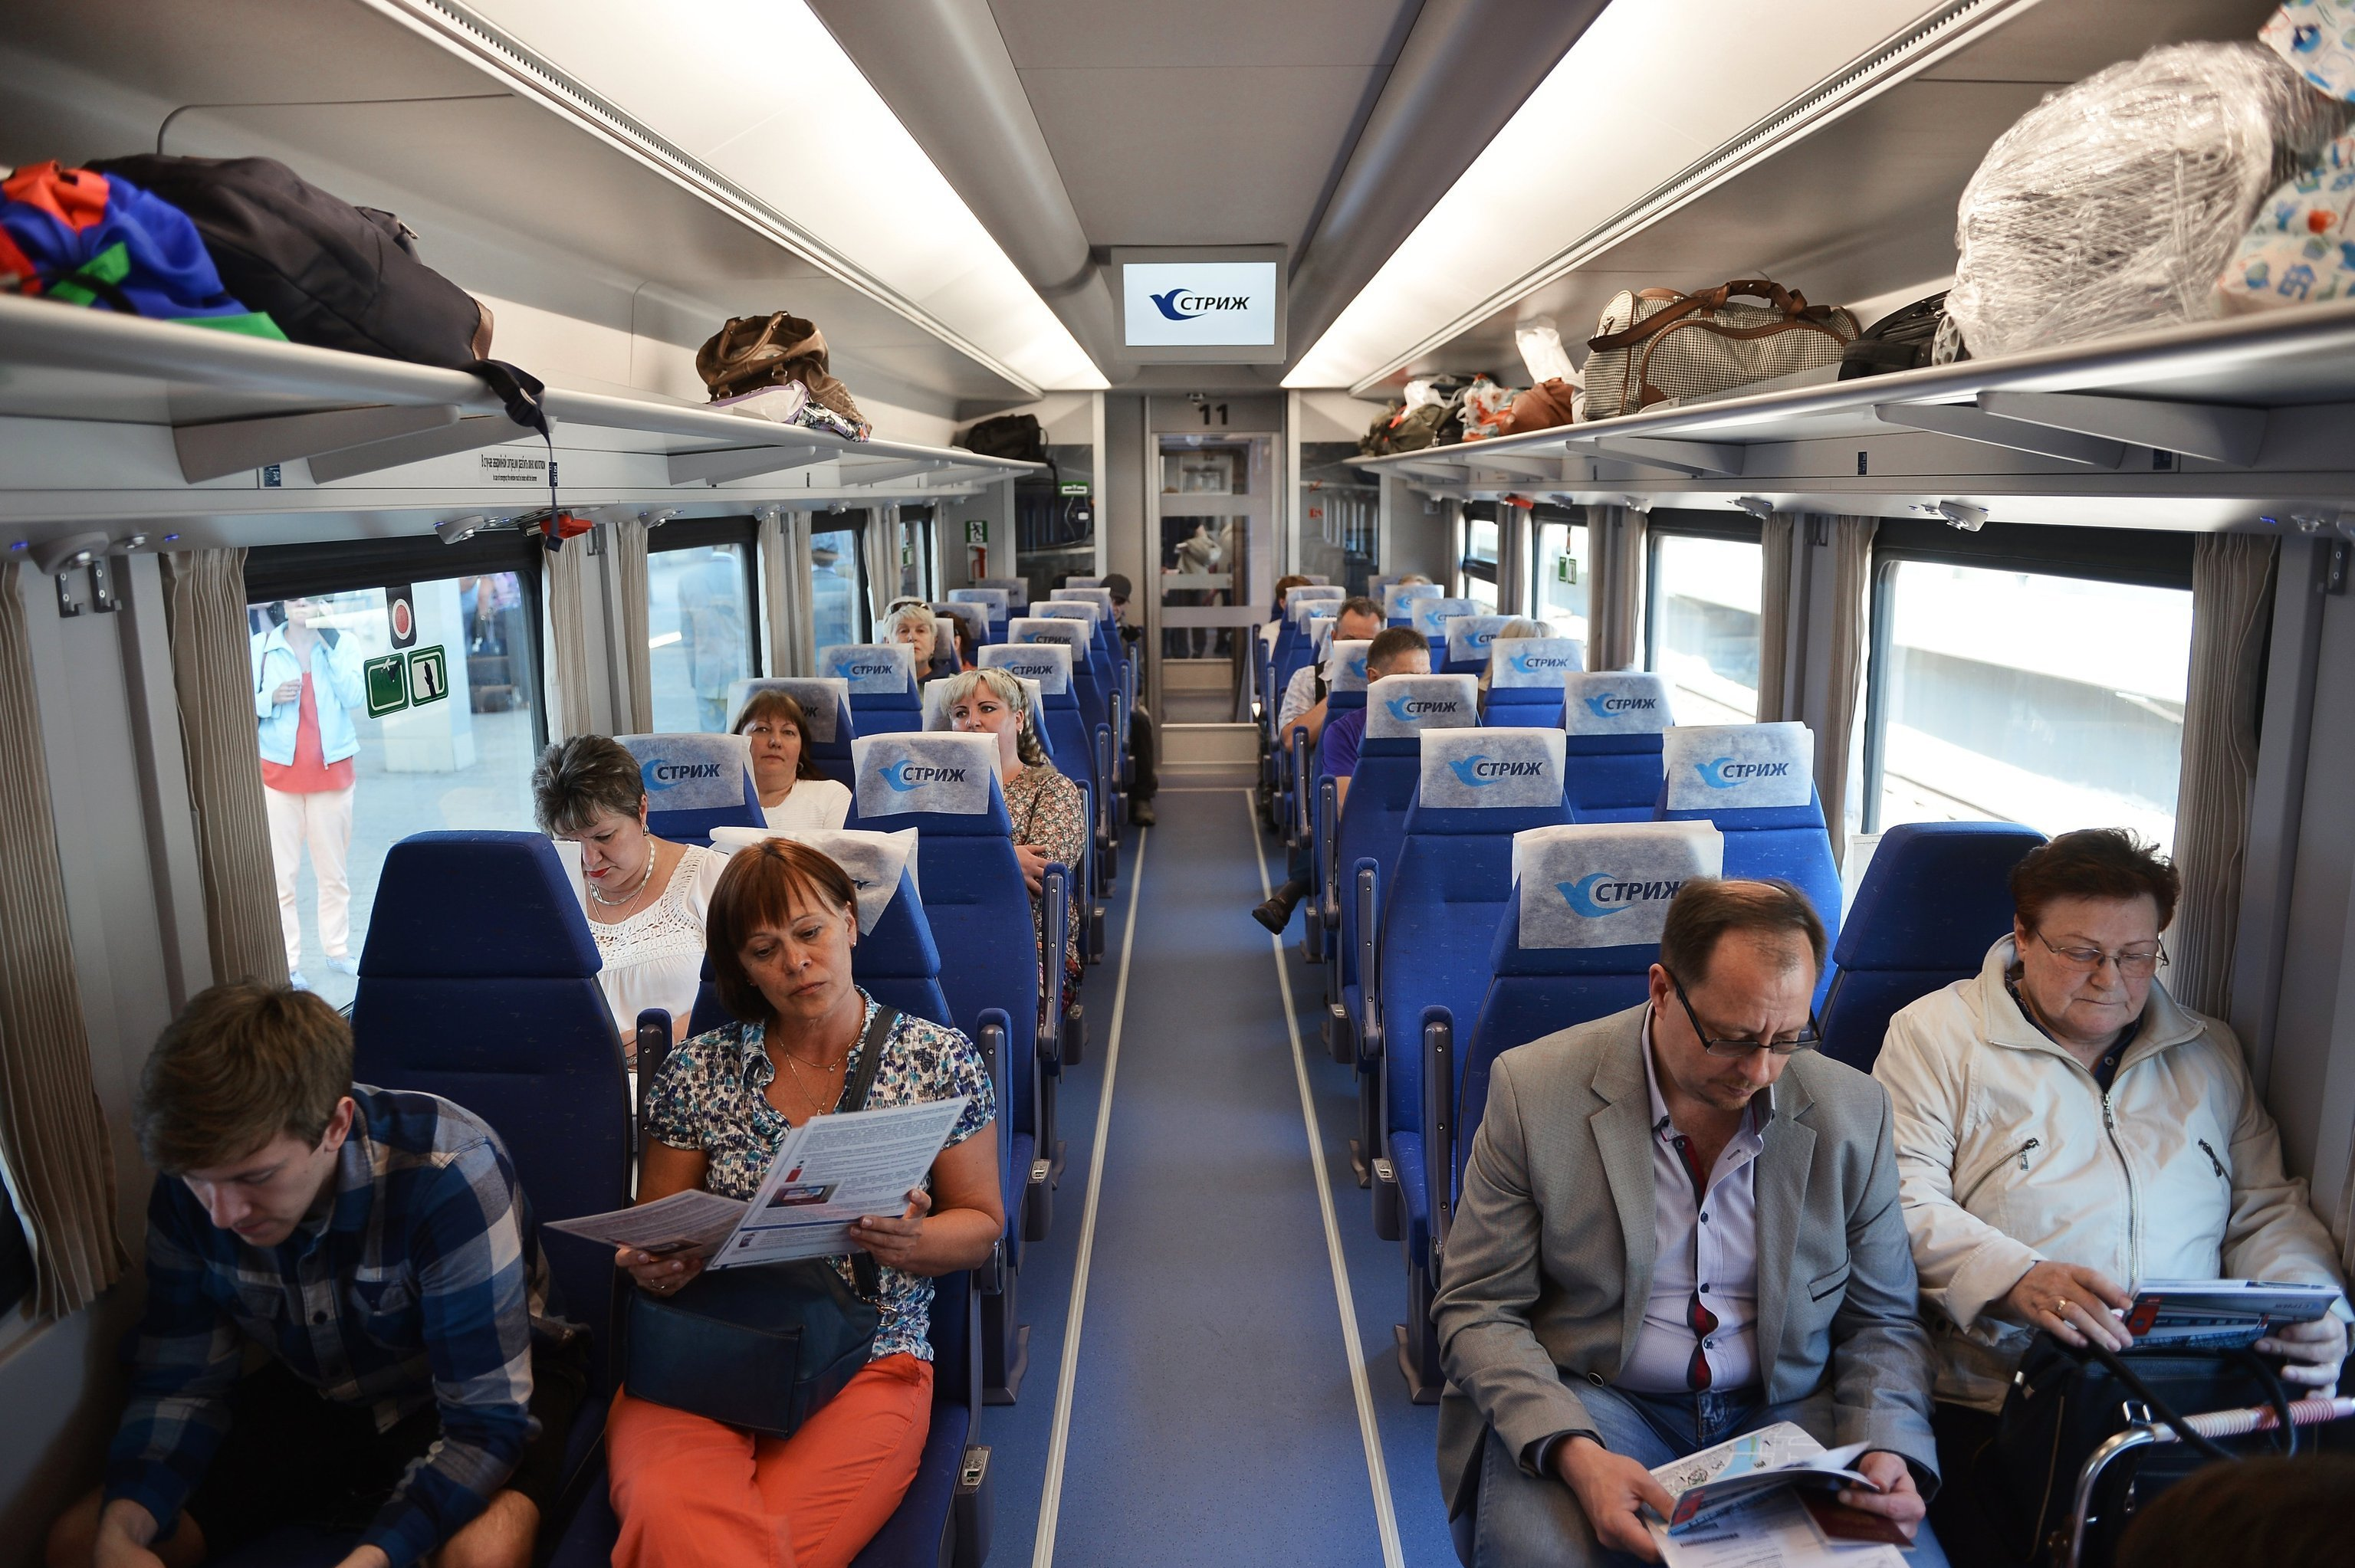 All Aboard! Passengers take their seats aboard the Strizh high speed train.